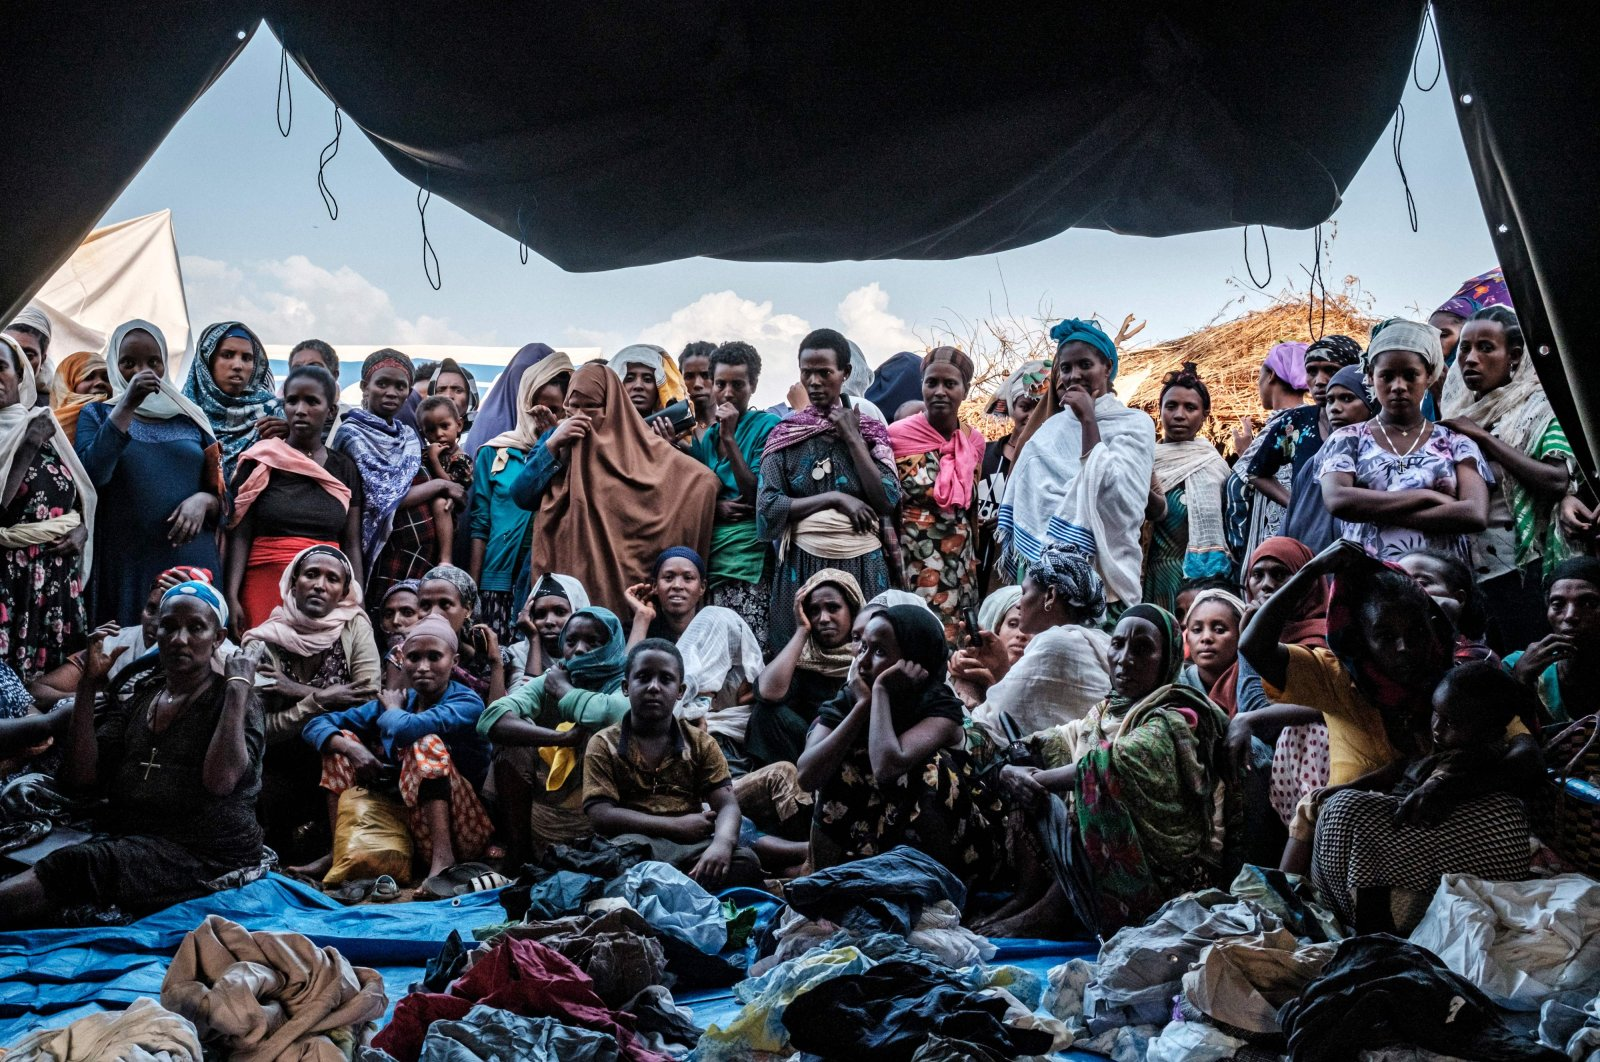 Internally Displaced People (IDP), fleeing from violence in the Metekel zone in Western Ethiopia, gather outside a tent where clothes are being distributed at a camp in Chagni, Ethiopia. Jan. 26, 2021. (AFP Photo)